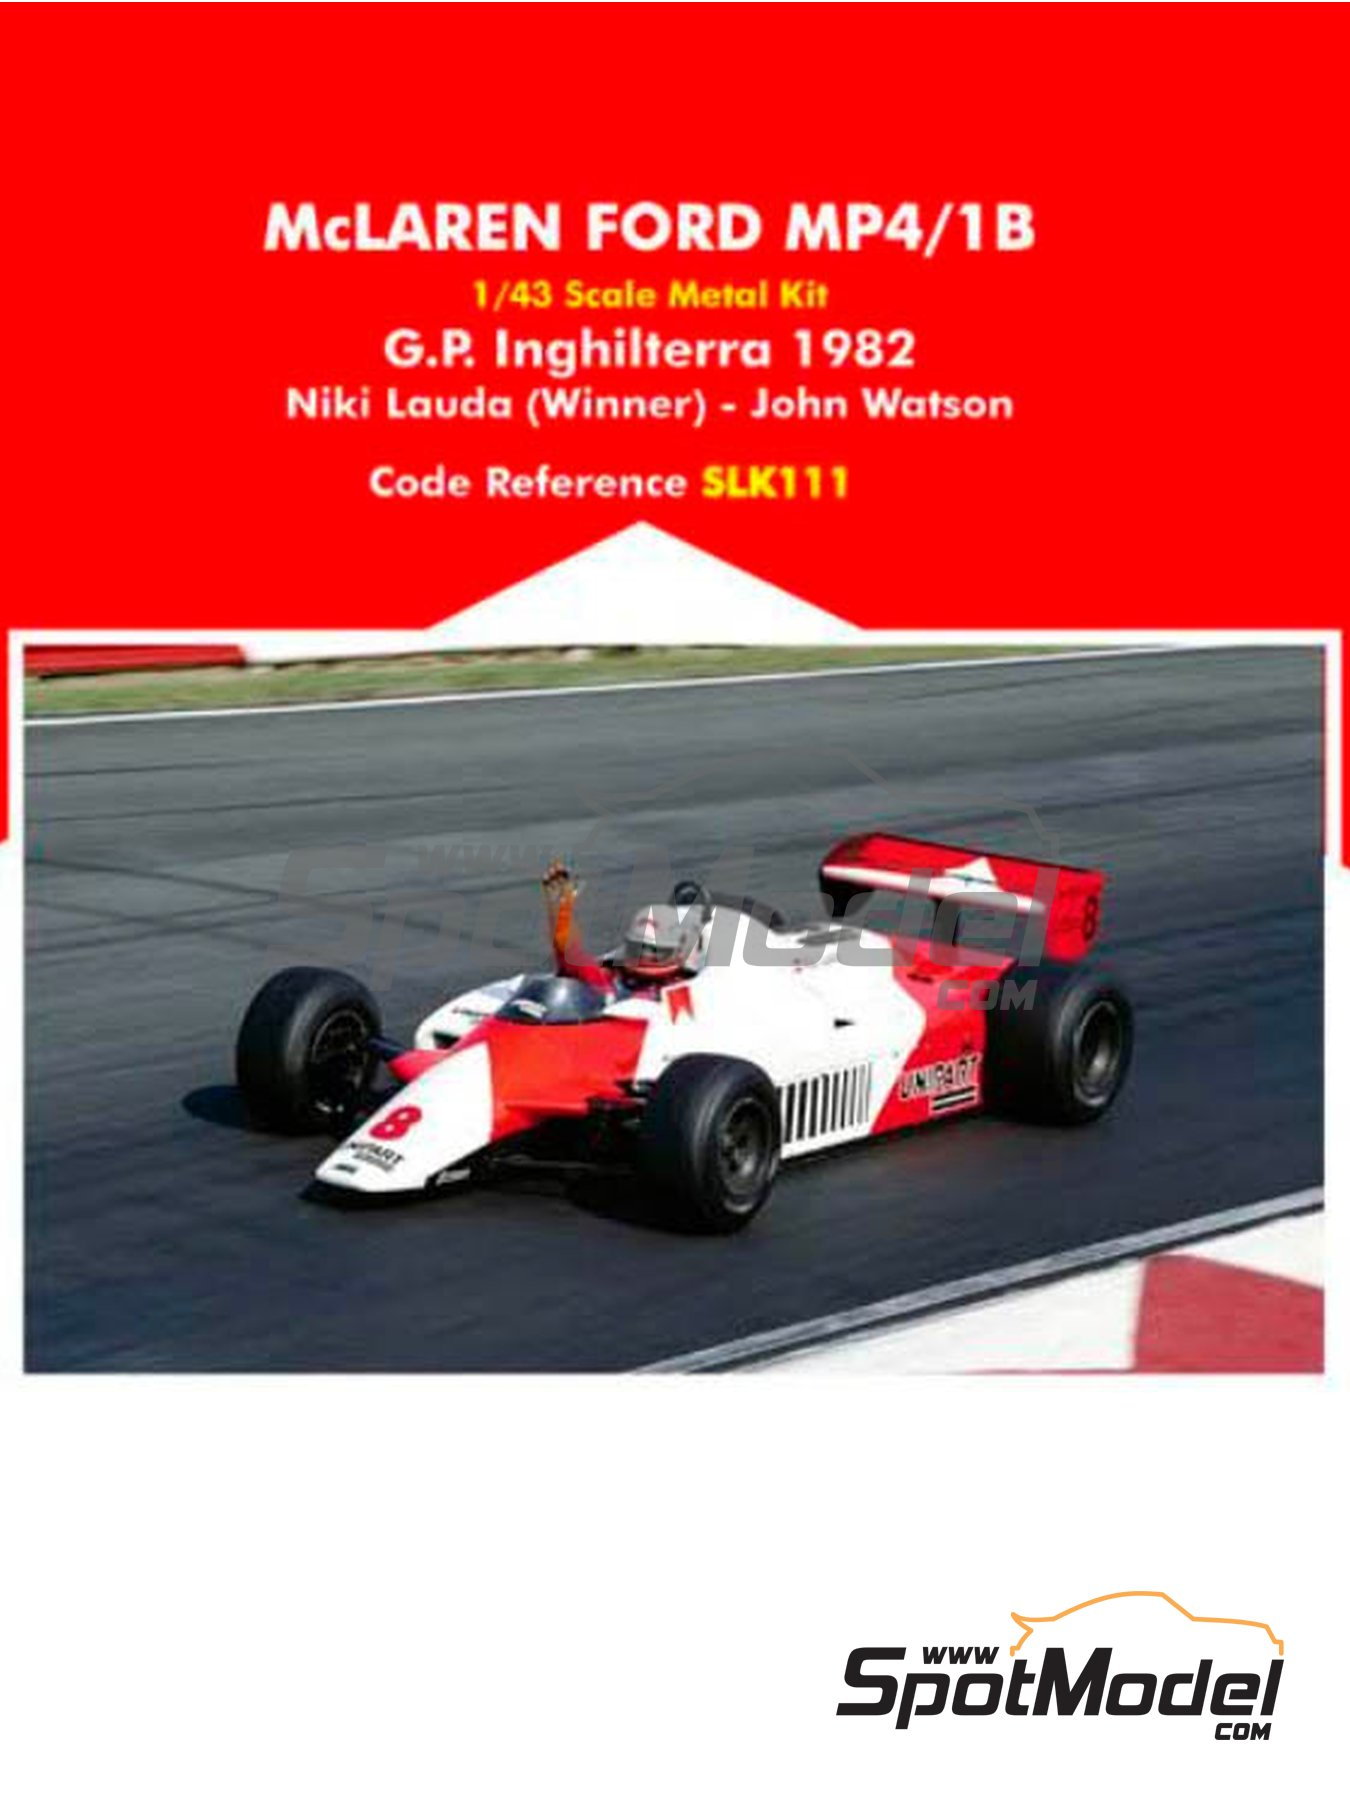 McLaren Ford MP4/1B Marlboro - FIA Formula 1 World Championship 1982 | Model car kit in 1/43 scale manufactured by Tameo Kits (ref. SLK111) image